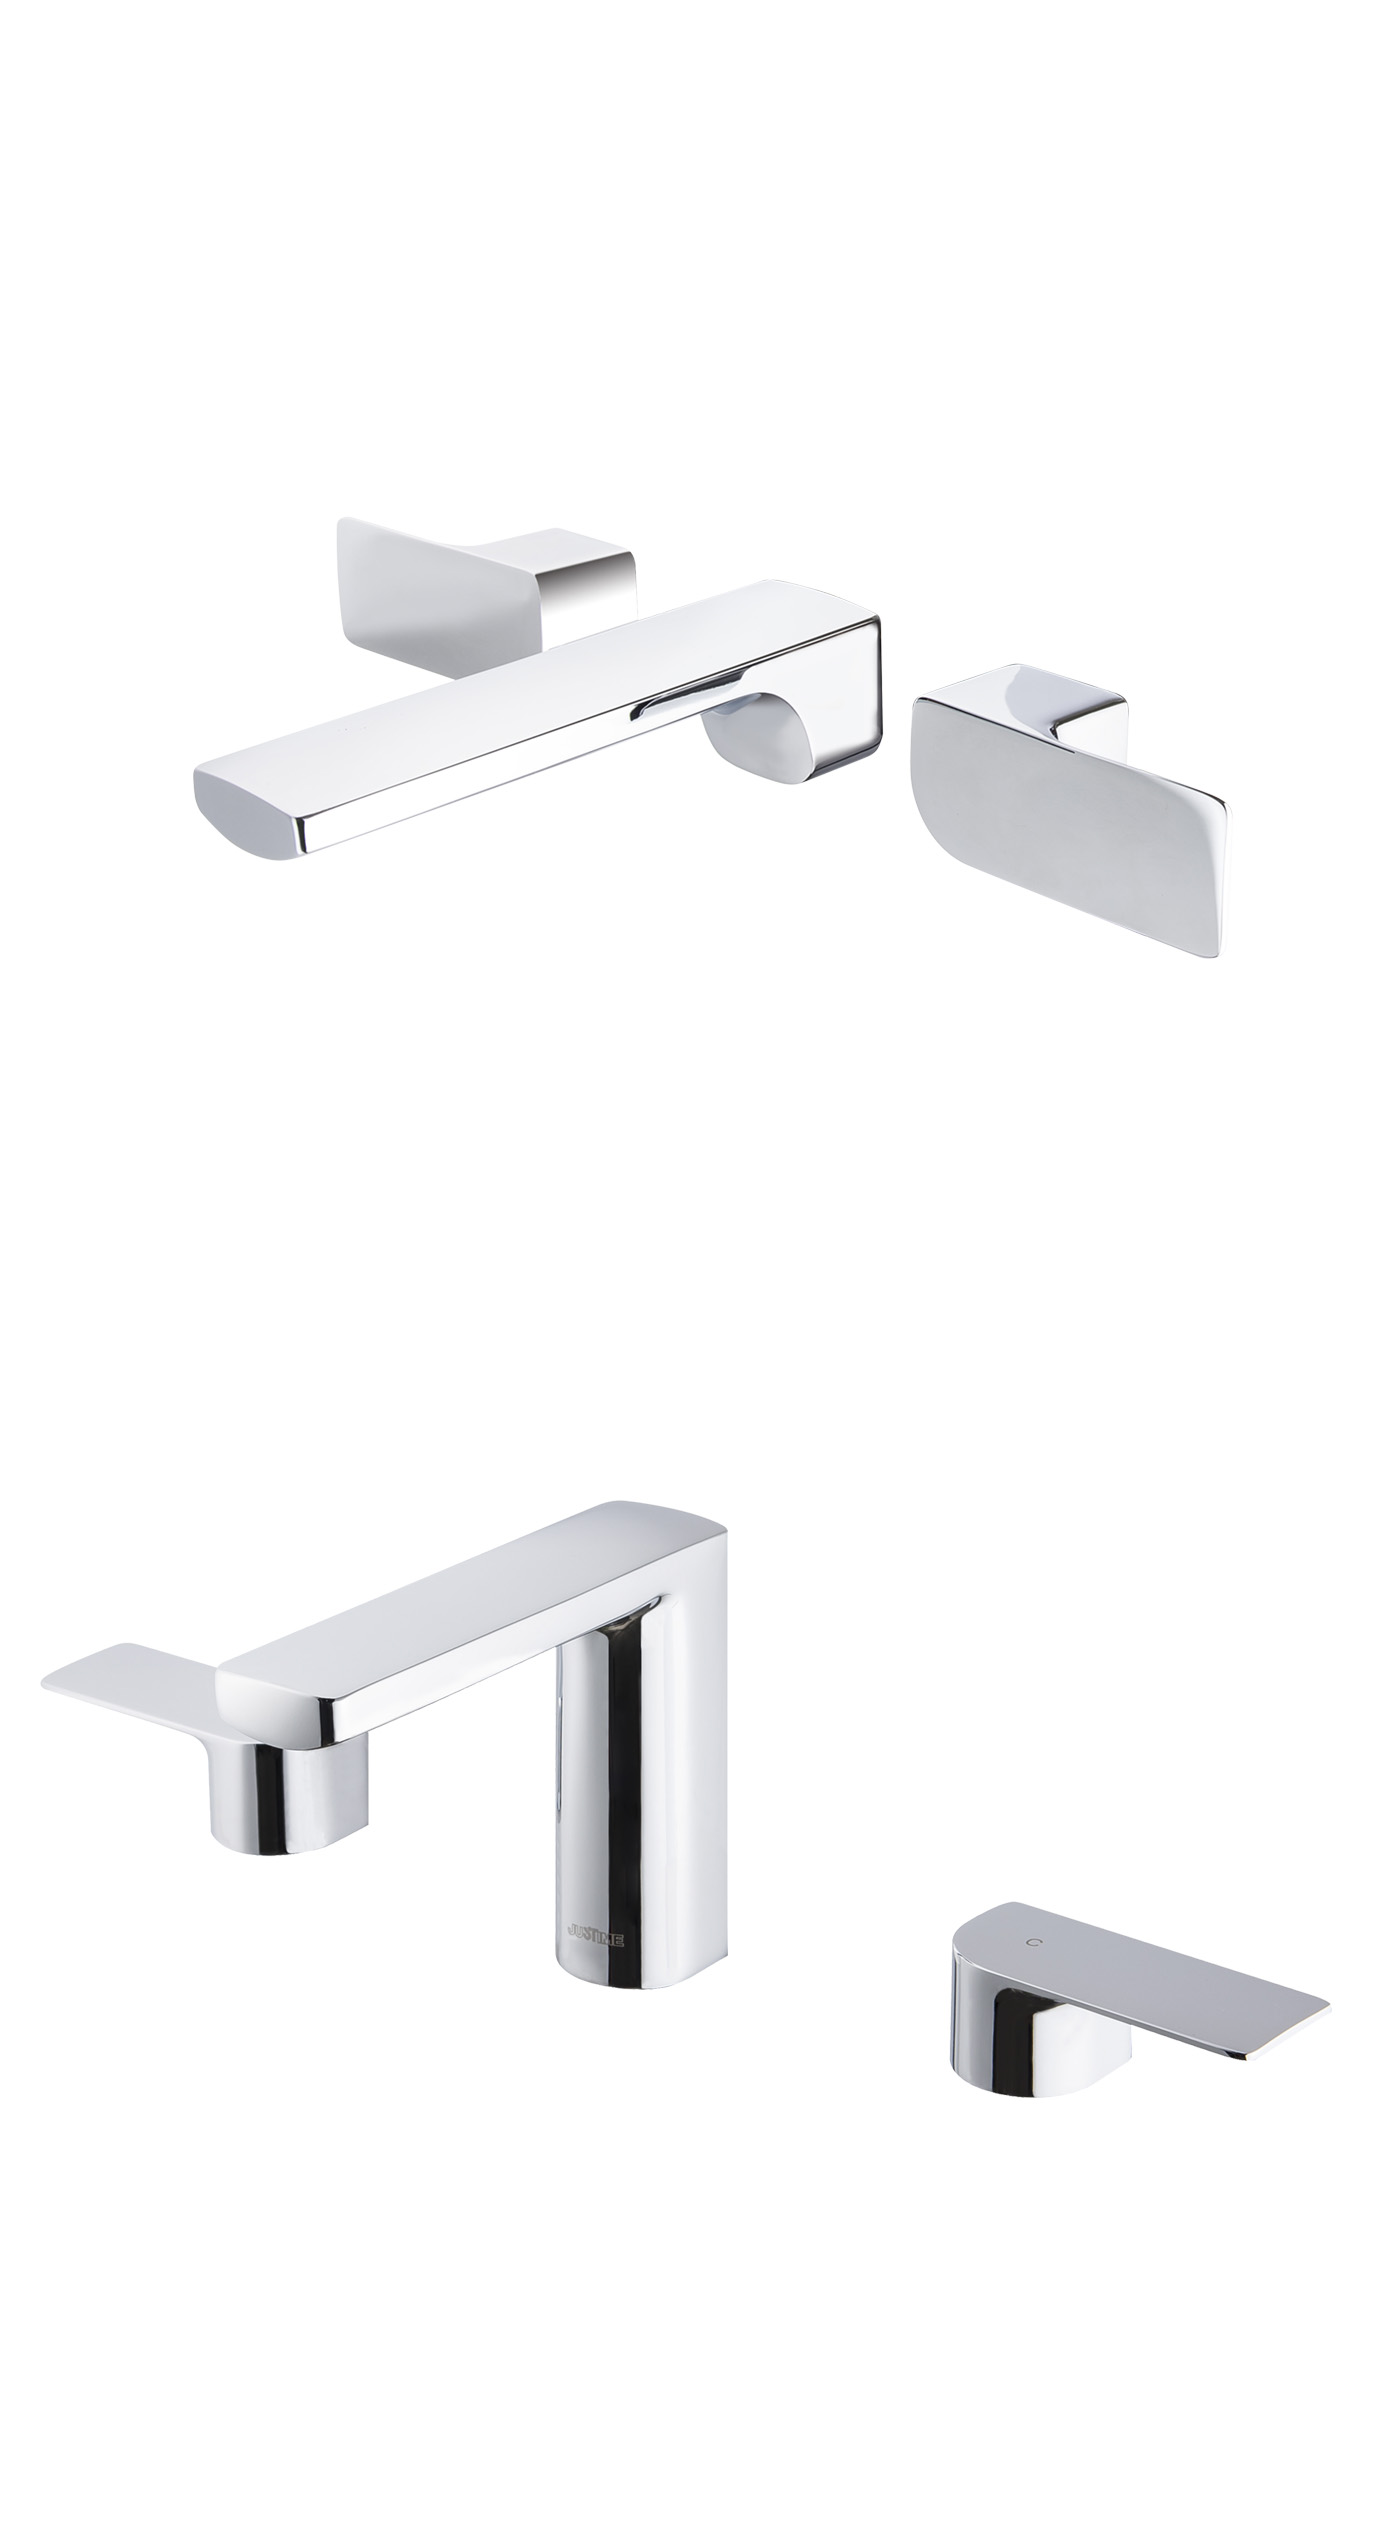 Arch 2 Two-Handle Basin Faucet /wall-mounted basin Faucet